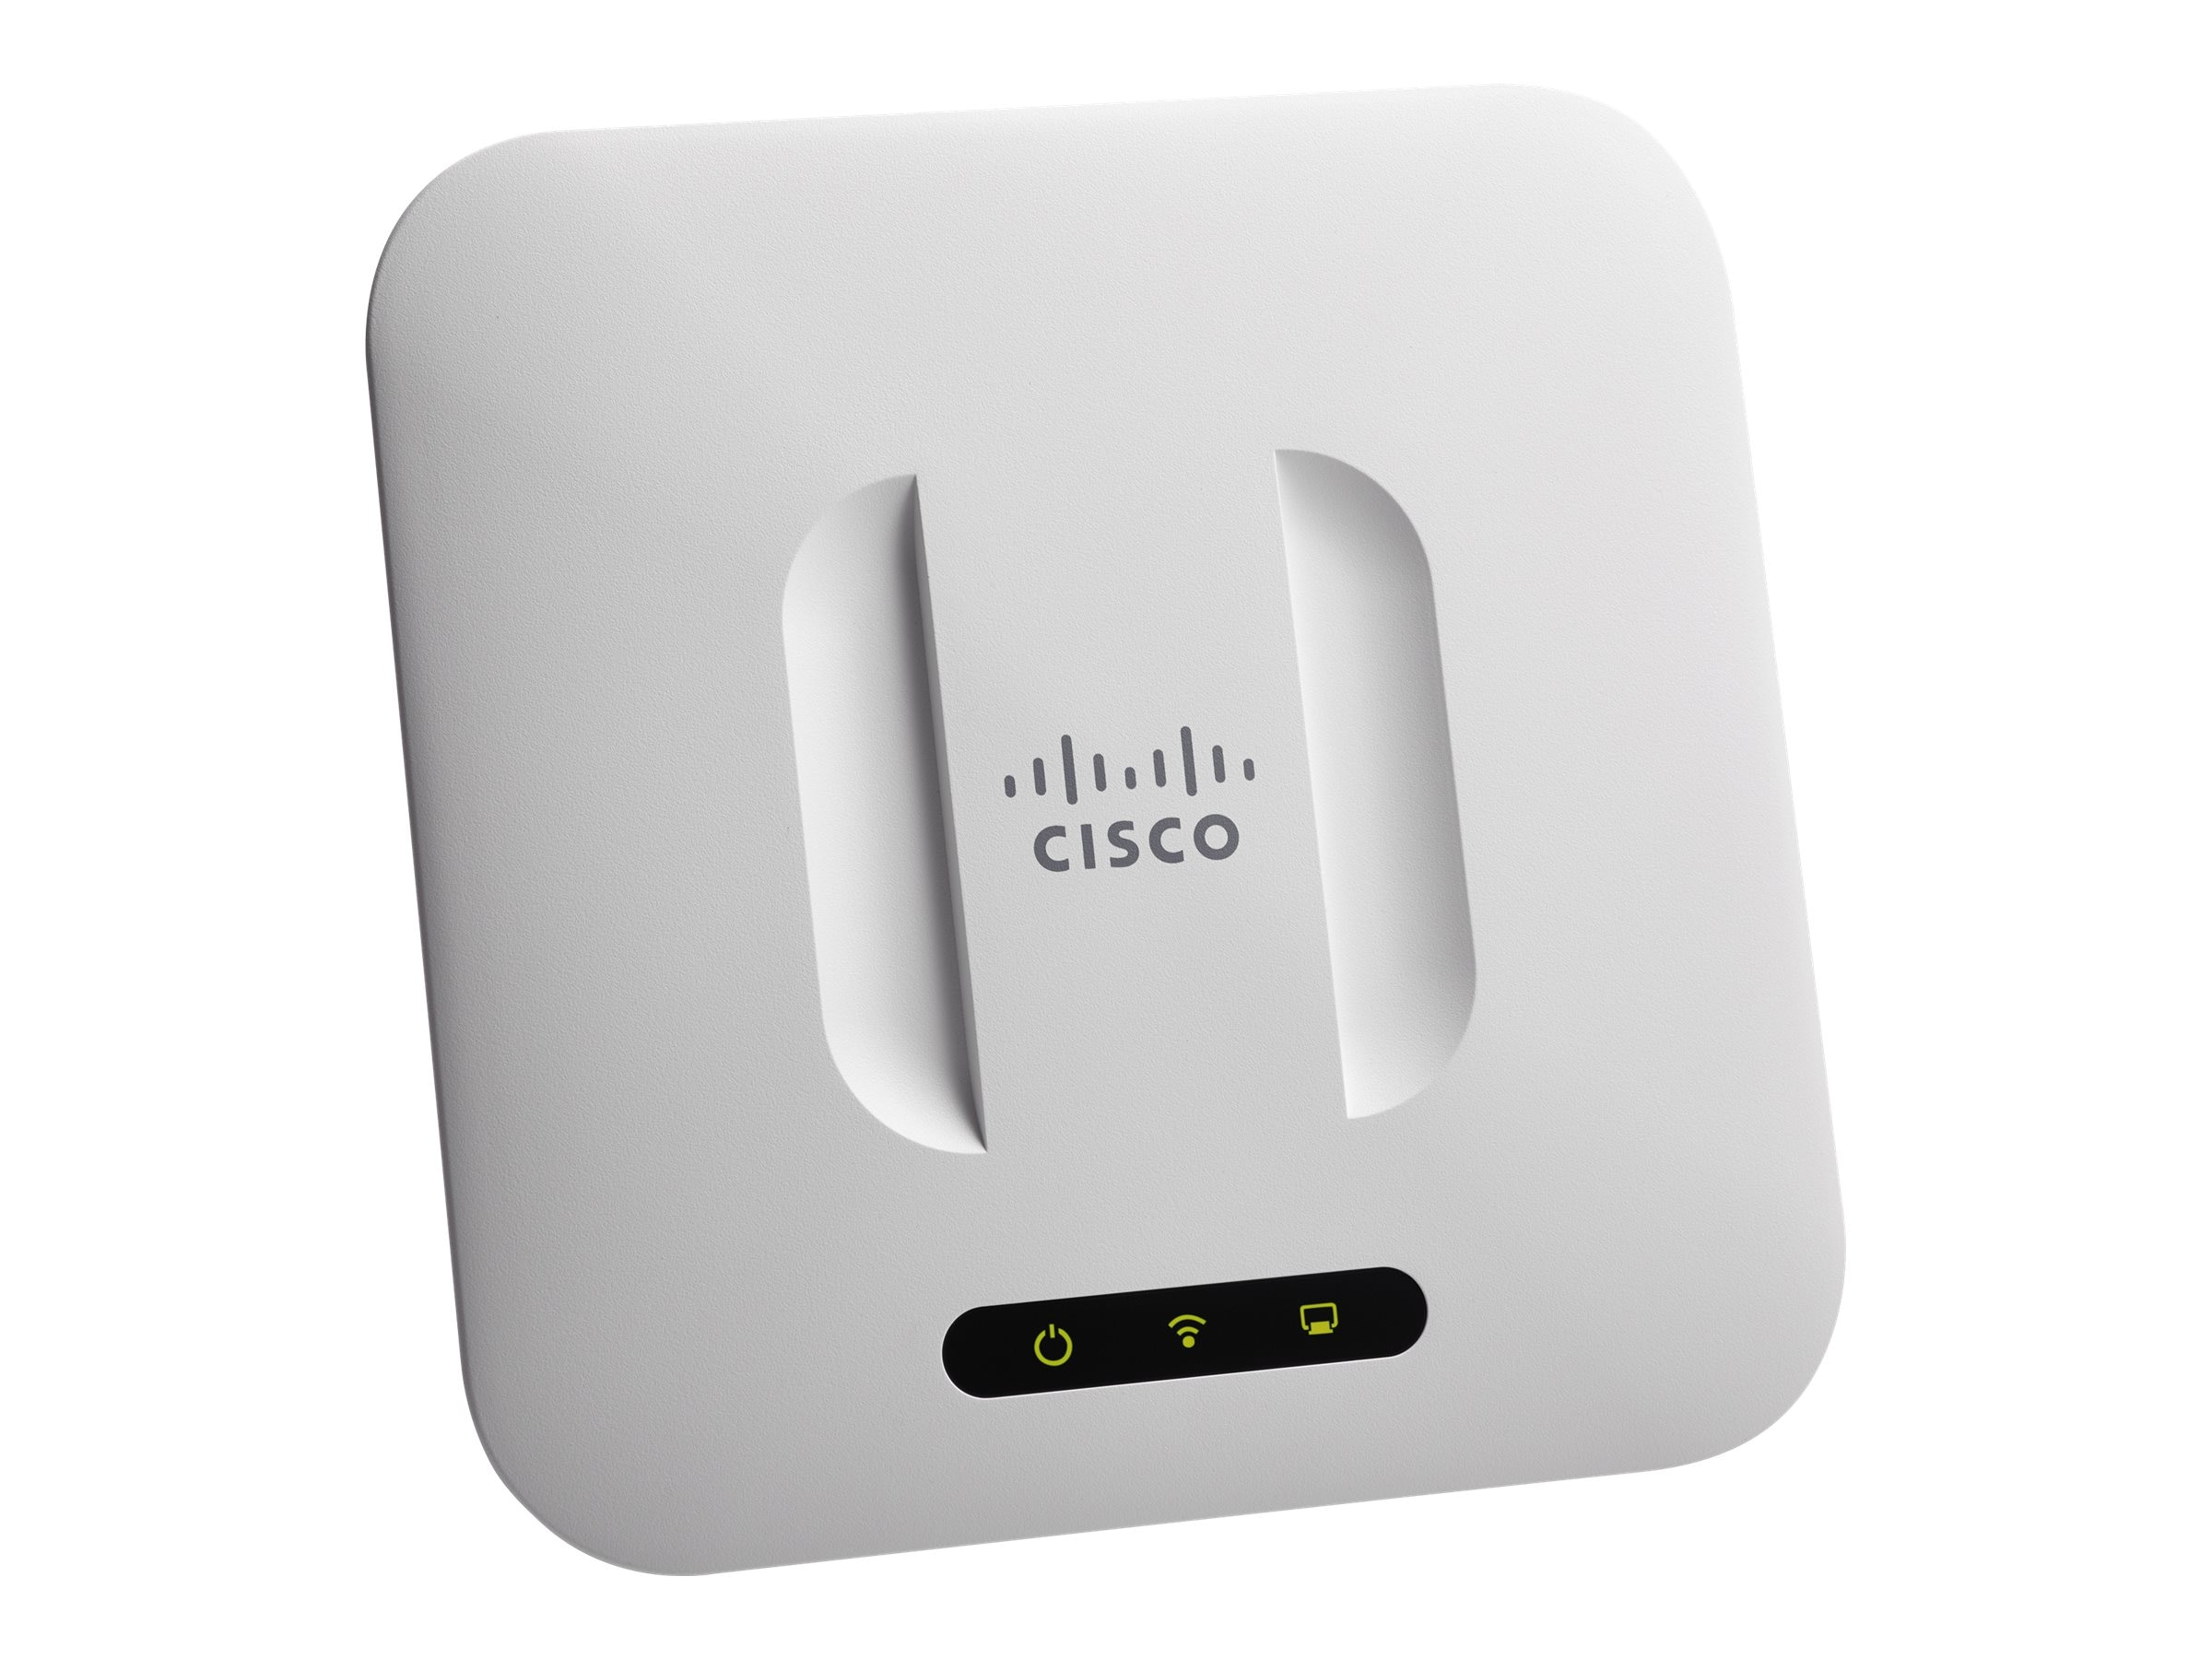 Cisco WAP371 Wireless-AC N Dual Radio Access Point with Single Point Setup, WAP371-A-K9, 17391722, Wireless Access Points & Bridges